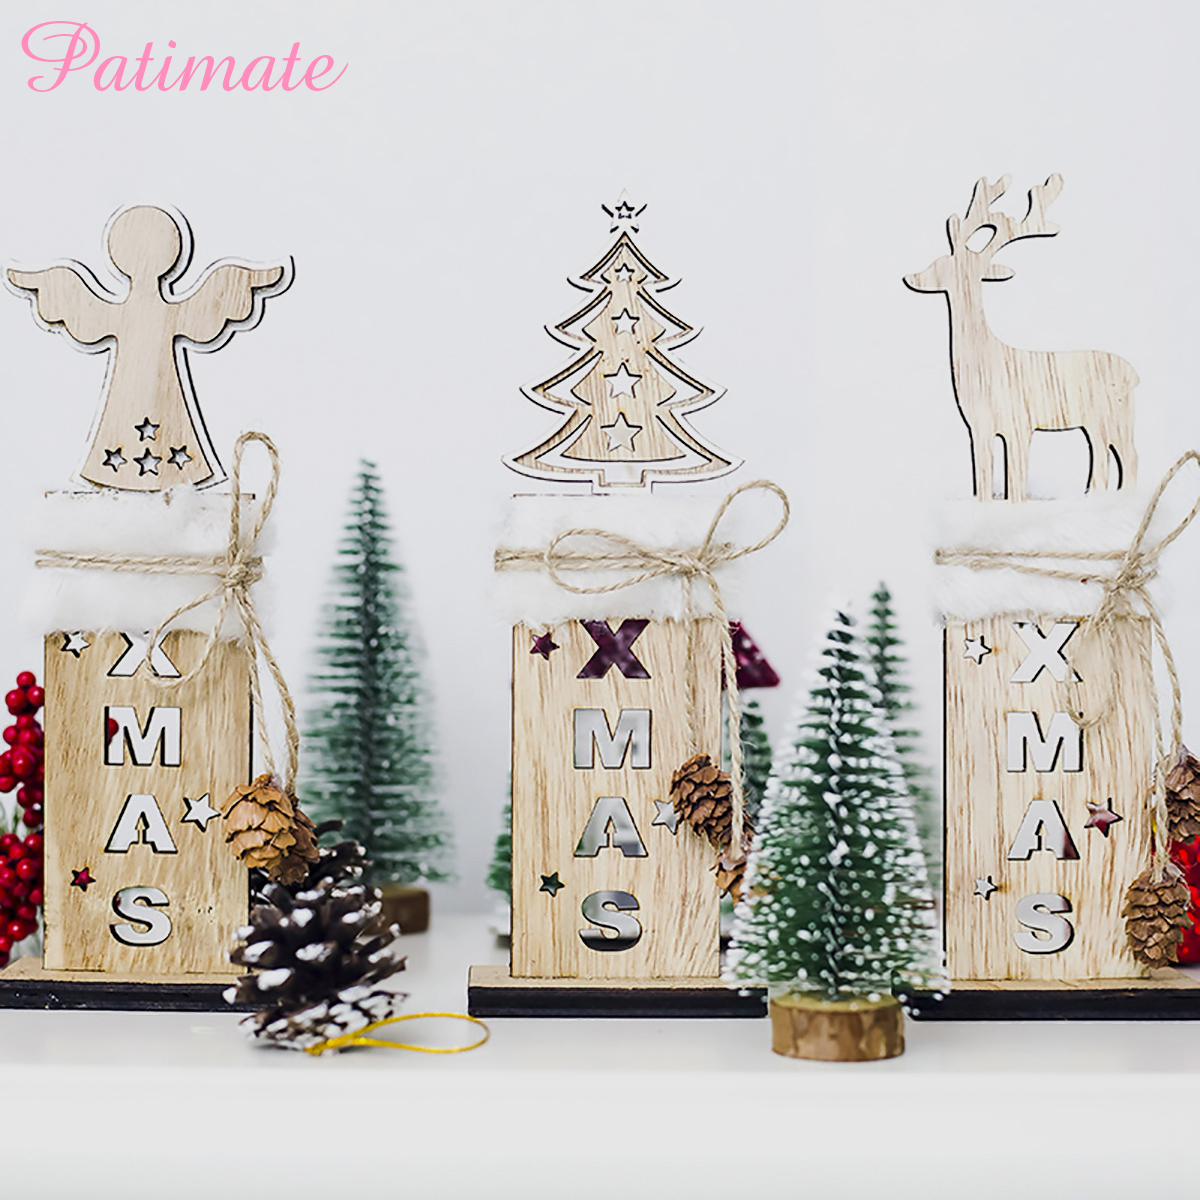 PATIMATE Wooden Christmas Tree Decoration Letter Bell Plush Sign Pendants Xmas Oranments Christmas Party Decor New Year in Pendant Drop Ornaments from Home Garden